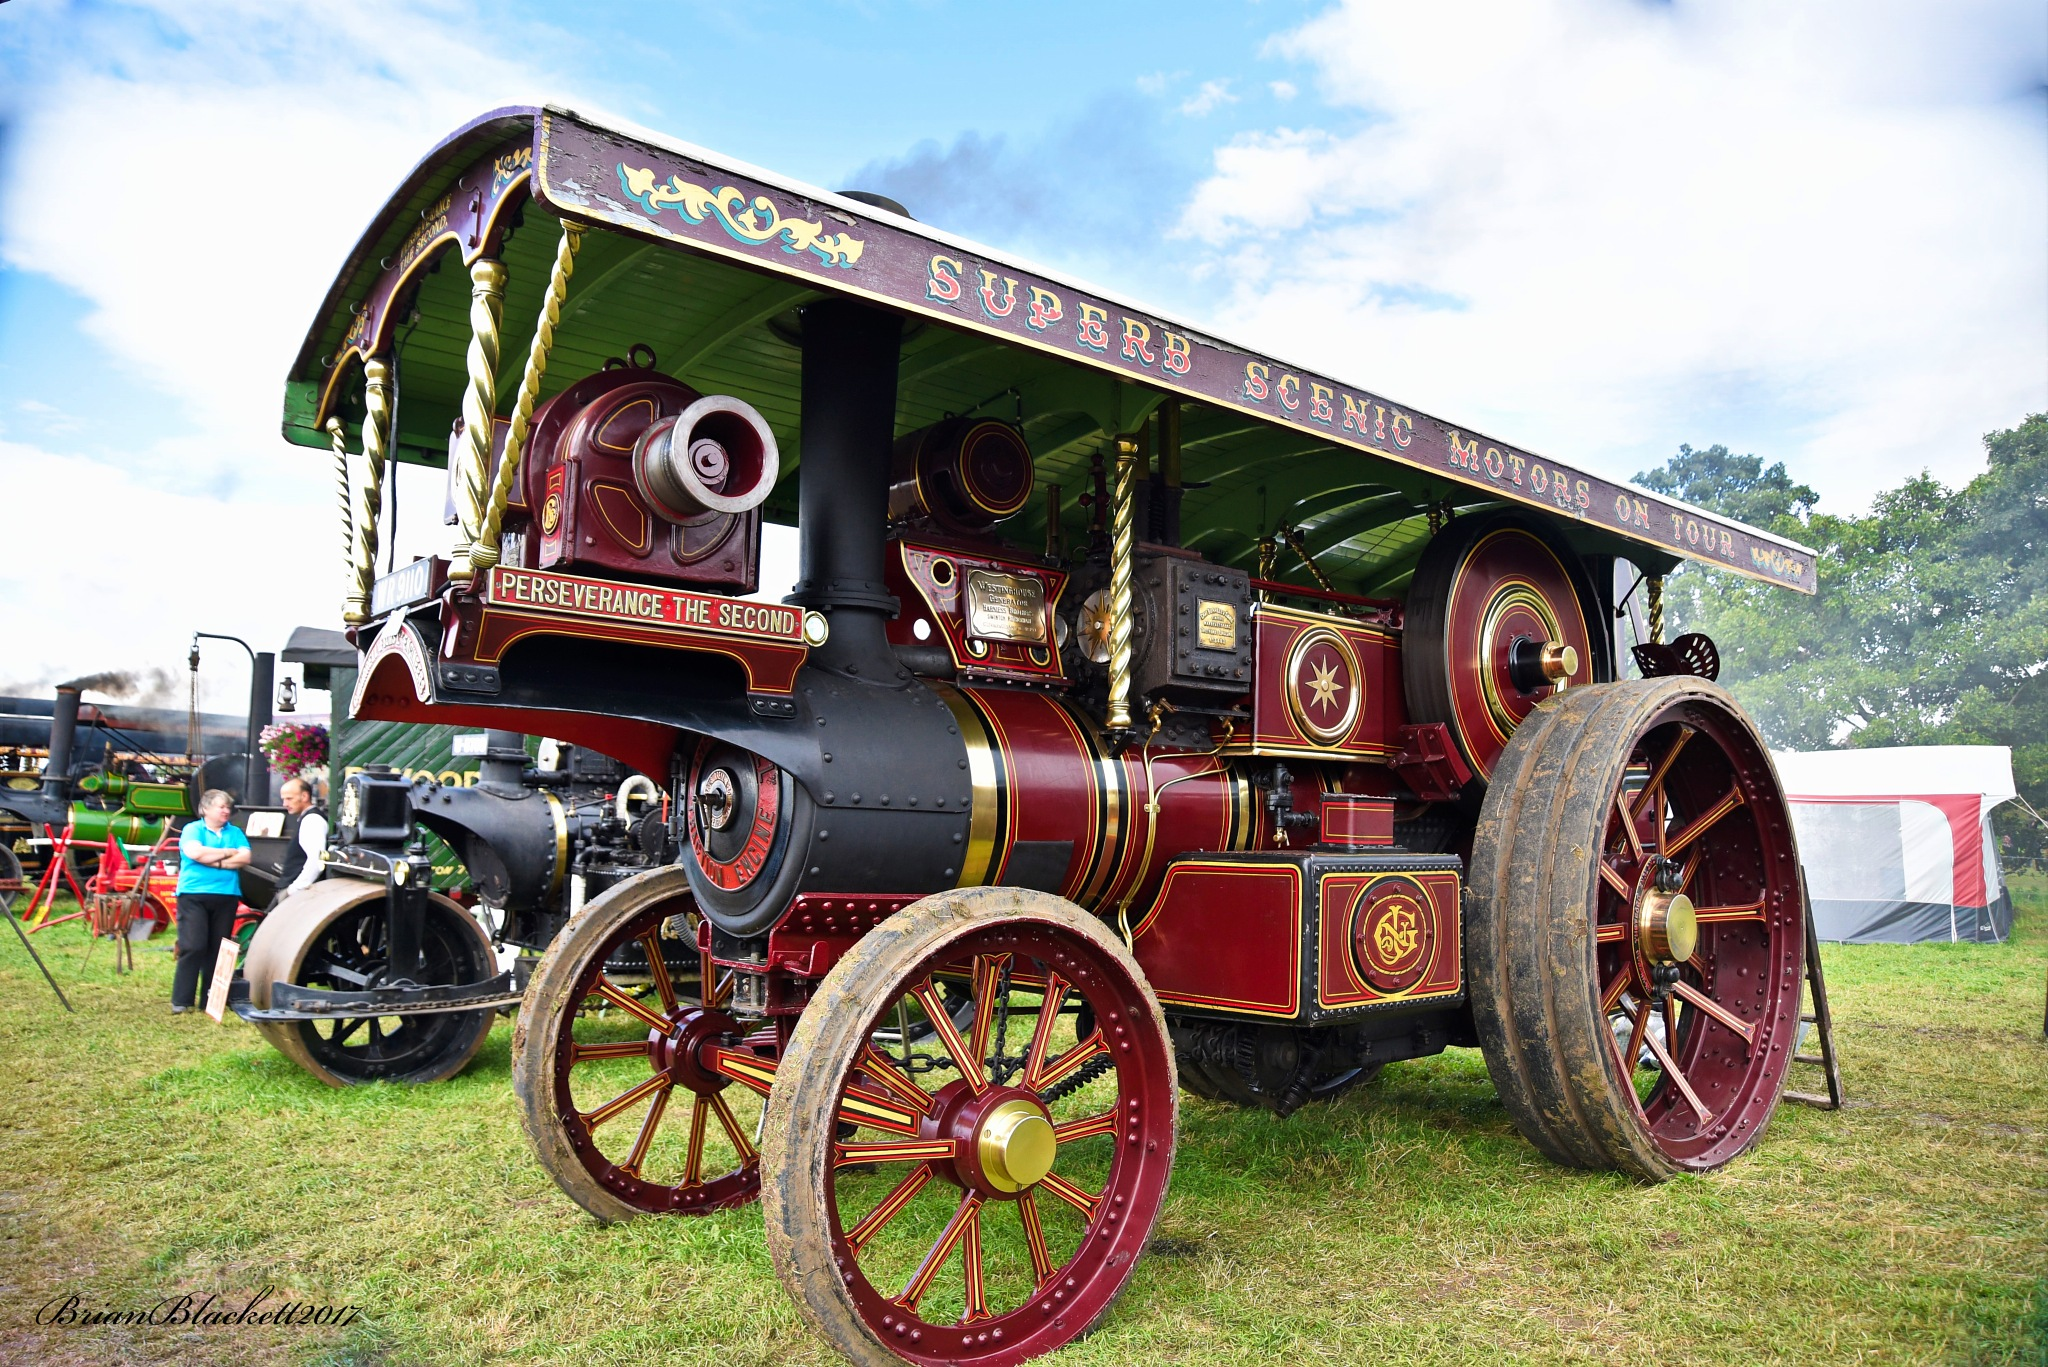 Hunton Steam Gathering Bedale North Yorkshire 2017 by brianblackett